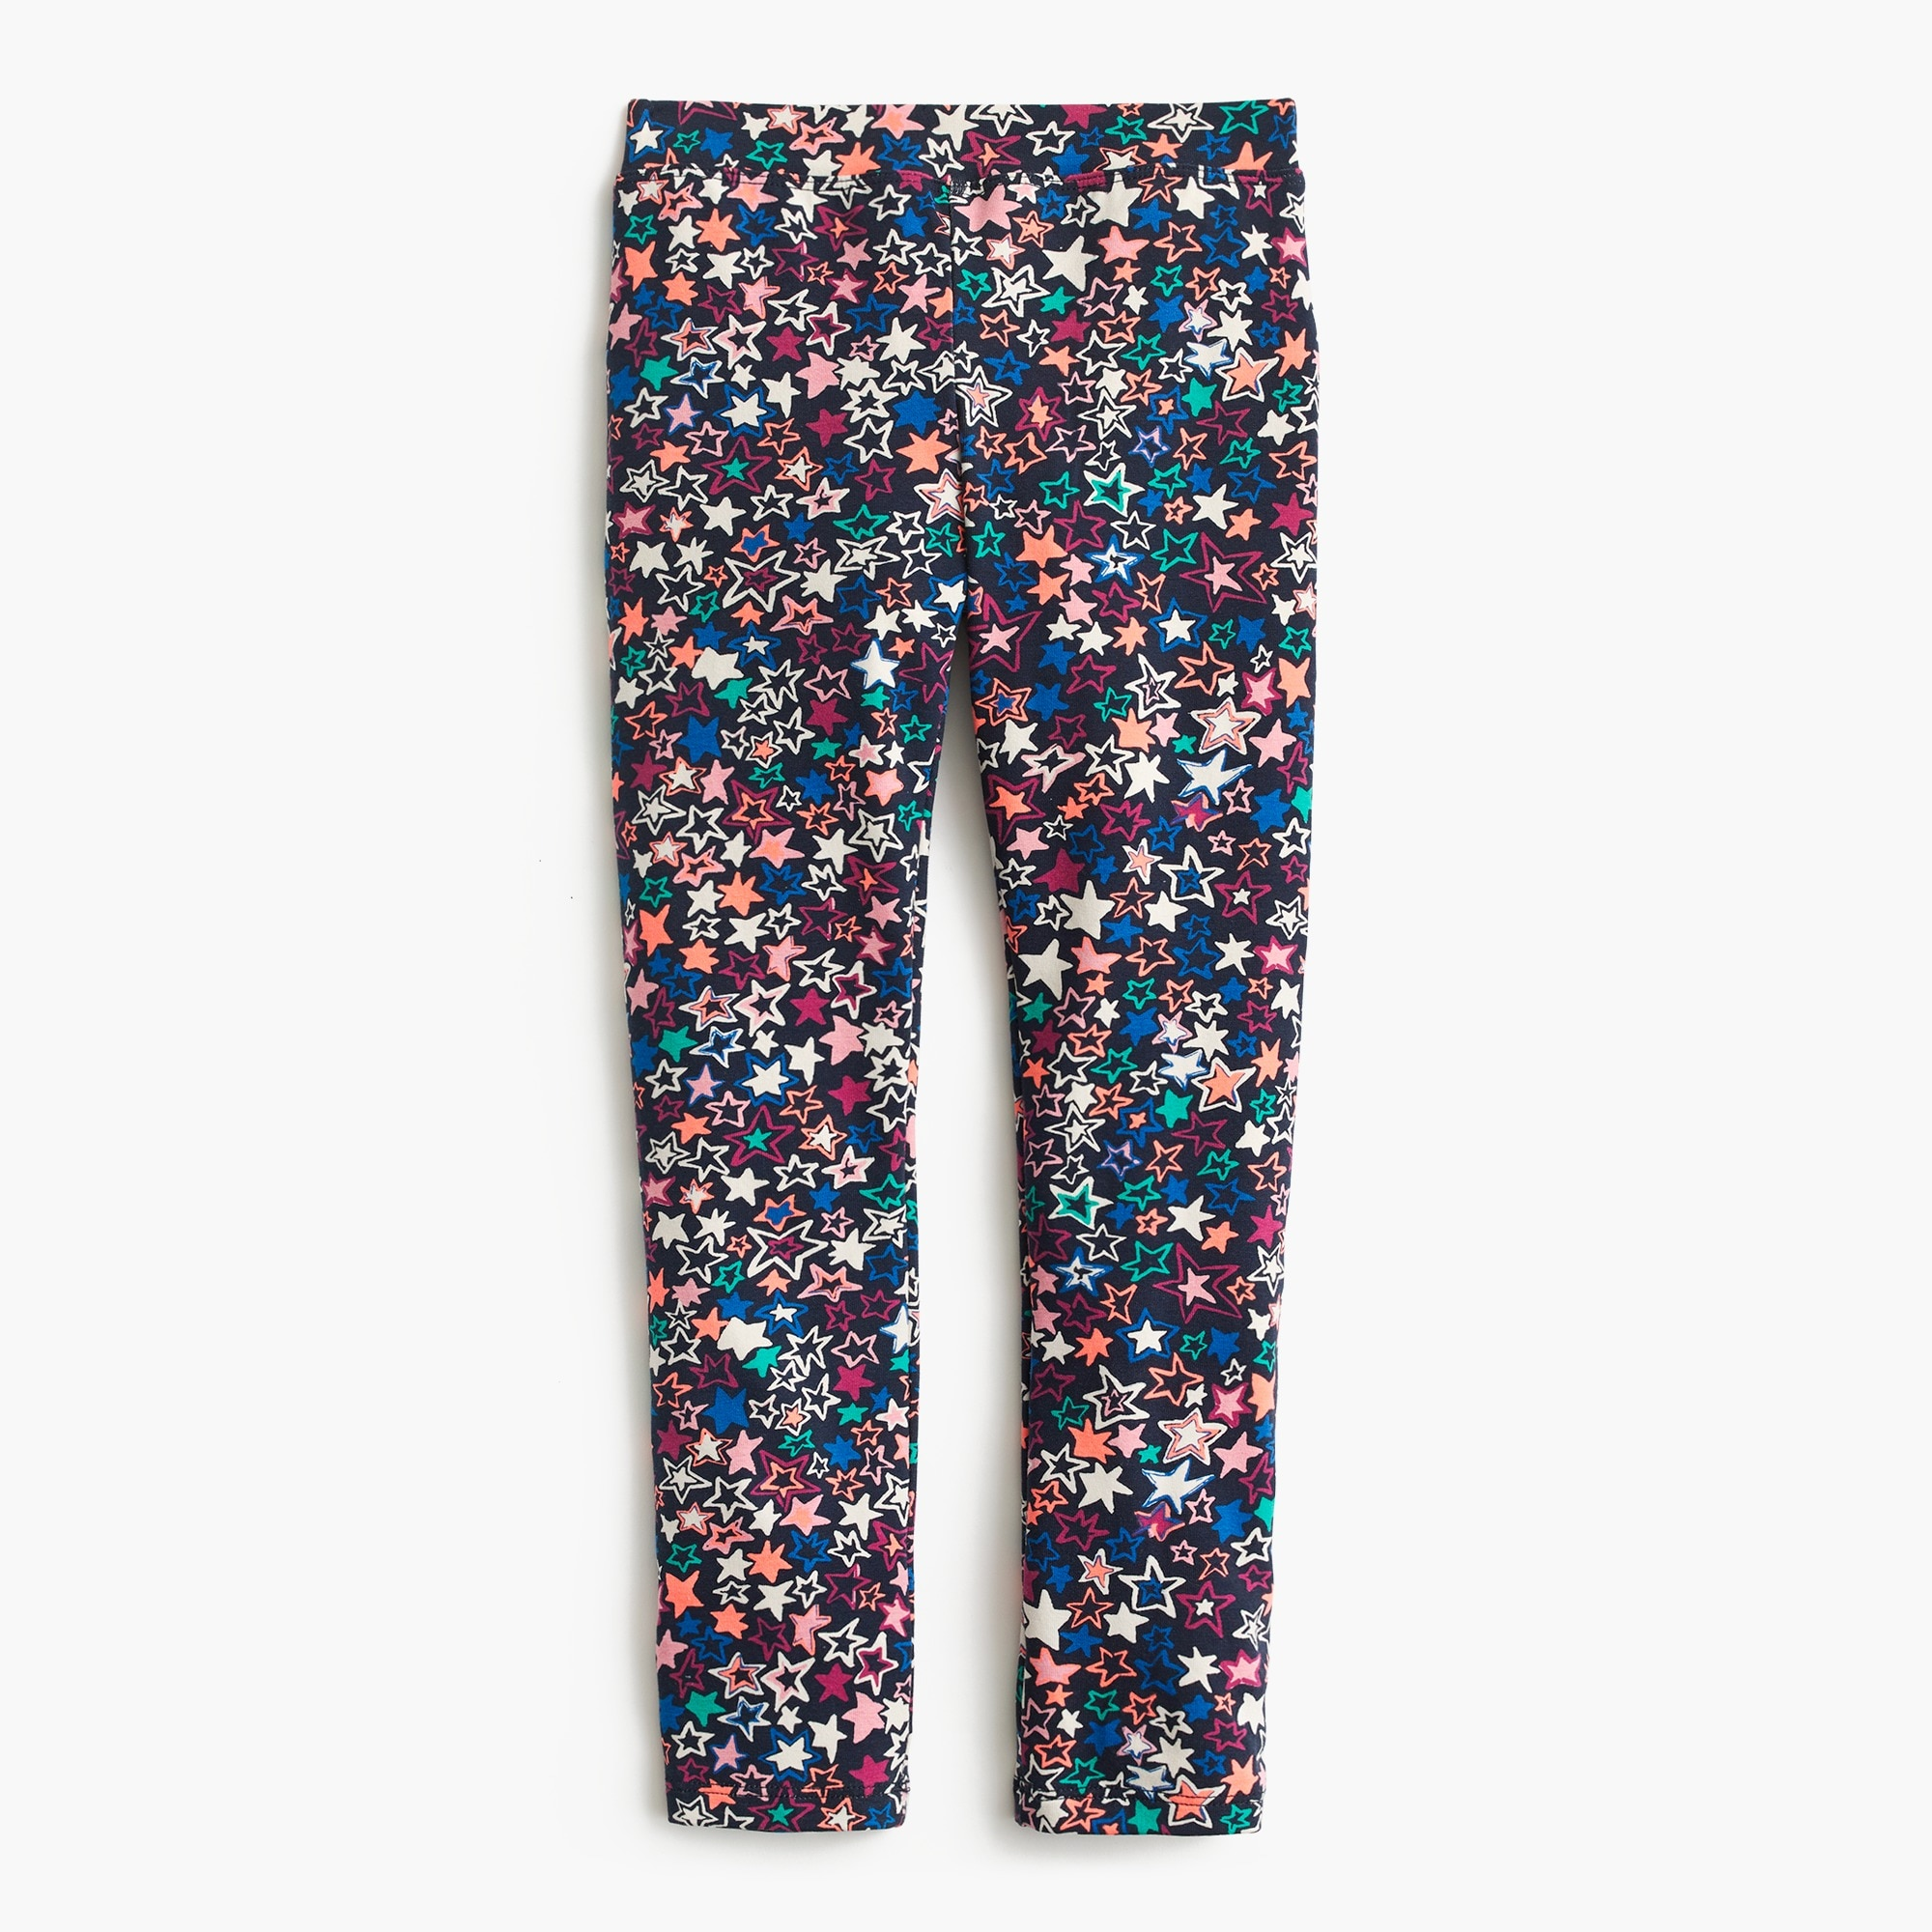 girls' everyday leggings in stars : girl leggings